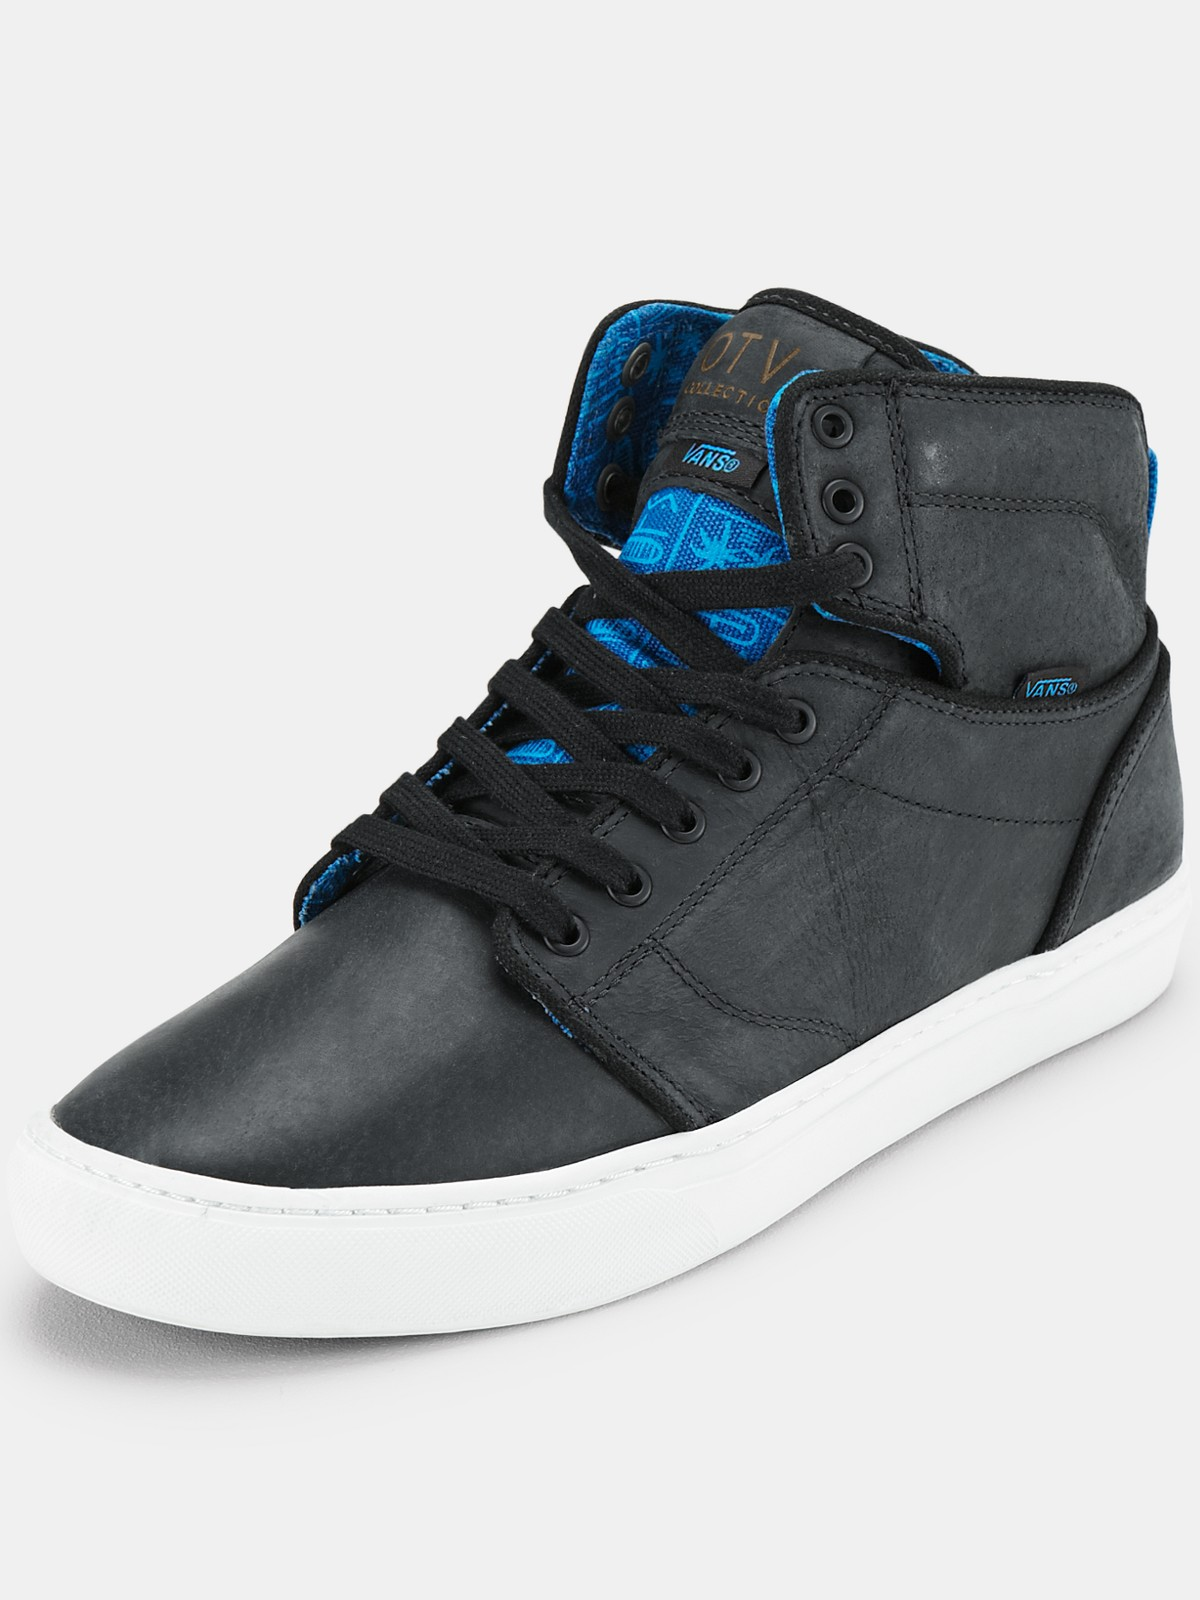 Vans Vans Otw Alomar Mens Mid Boots In Black For Men